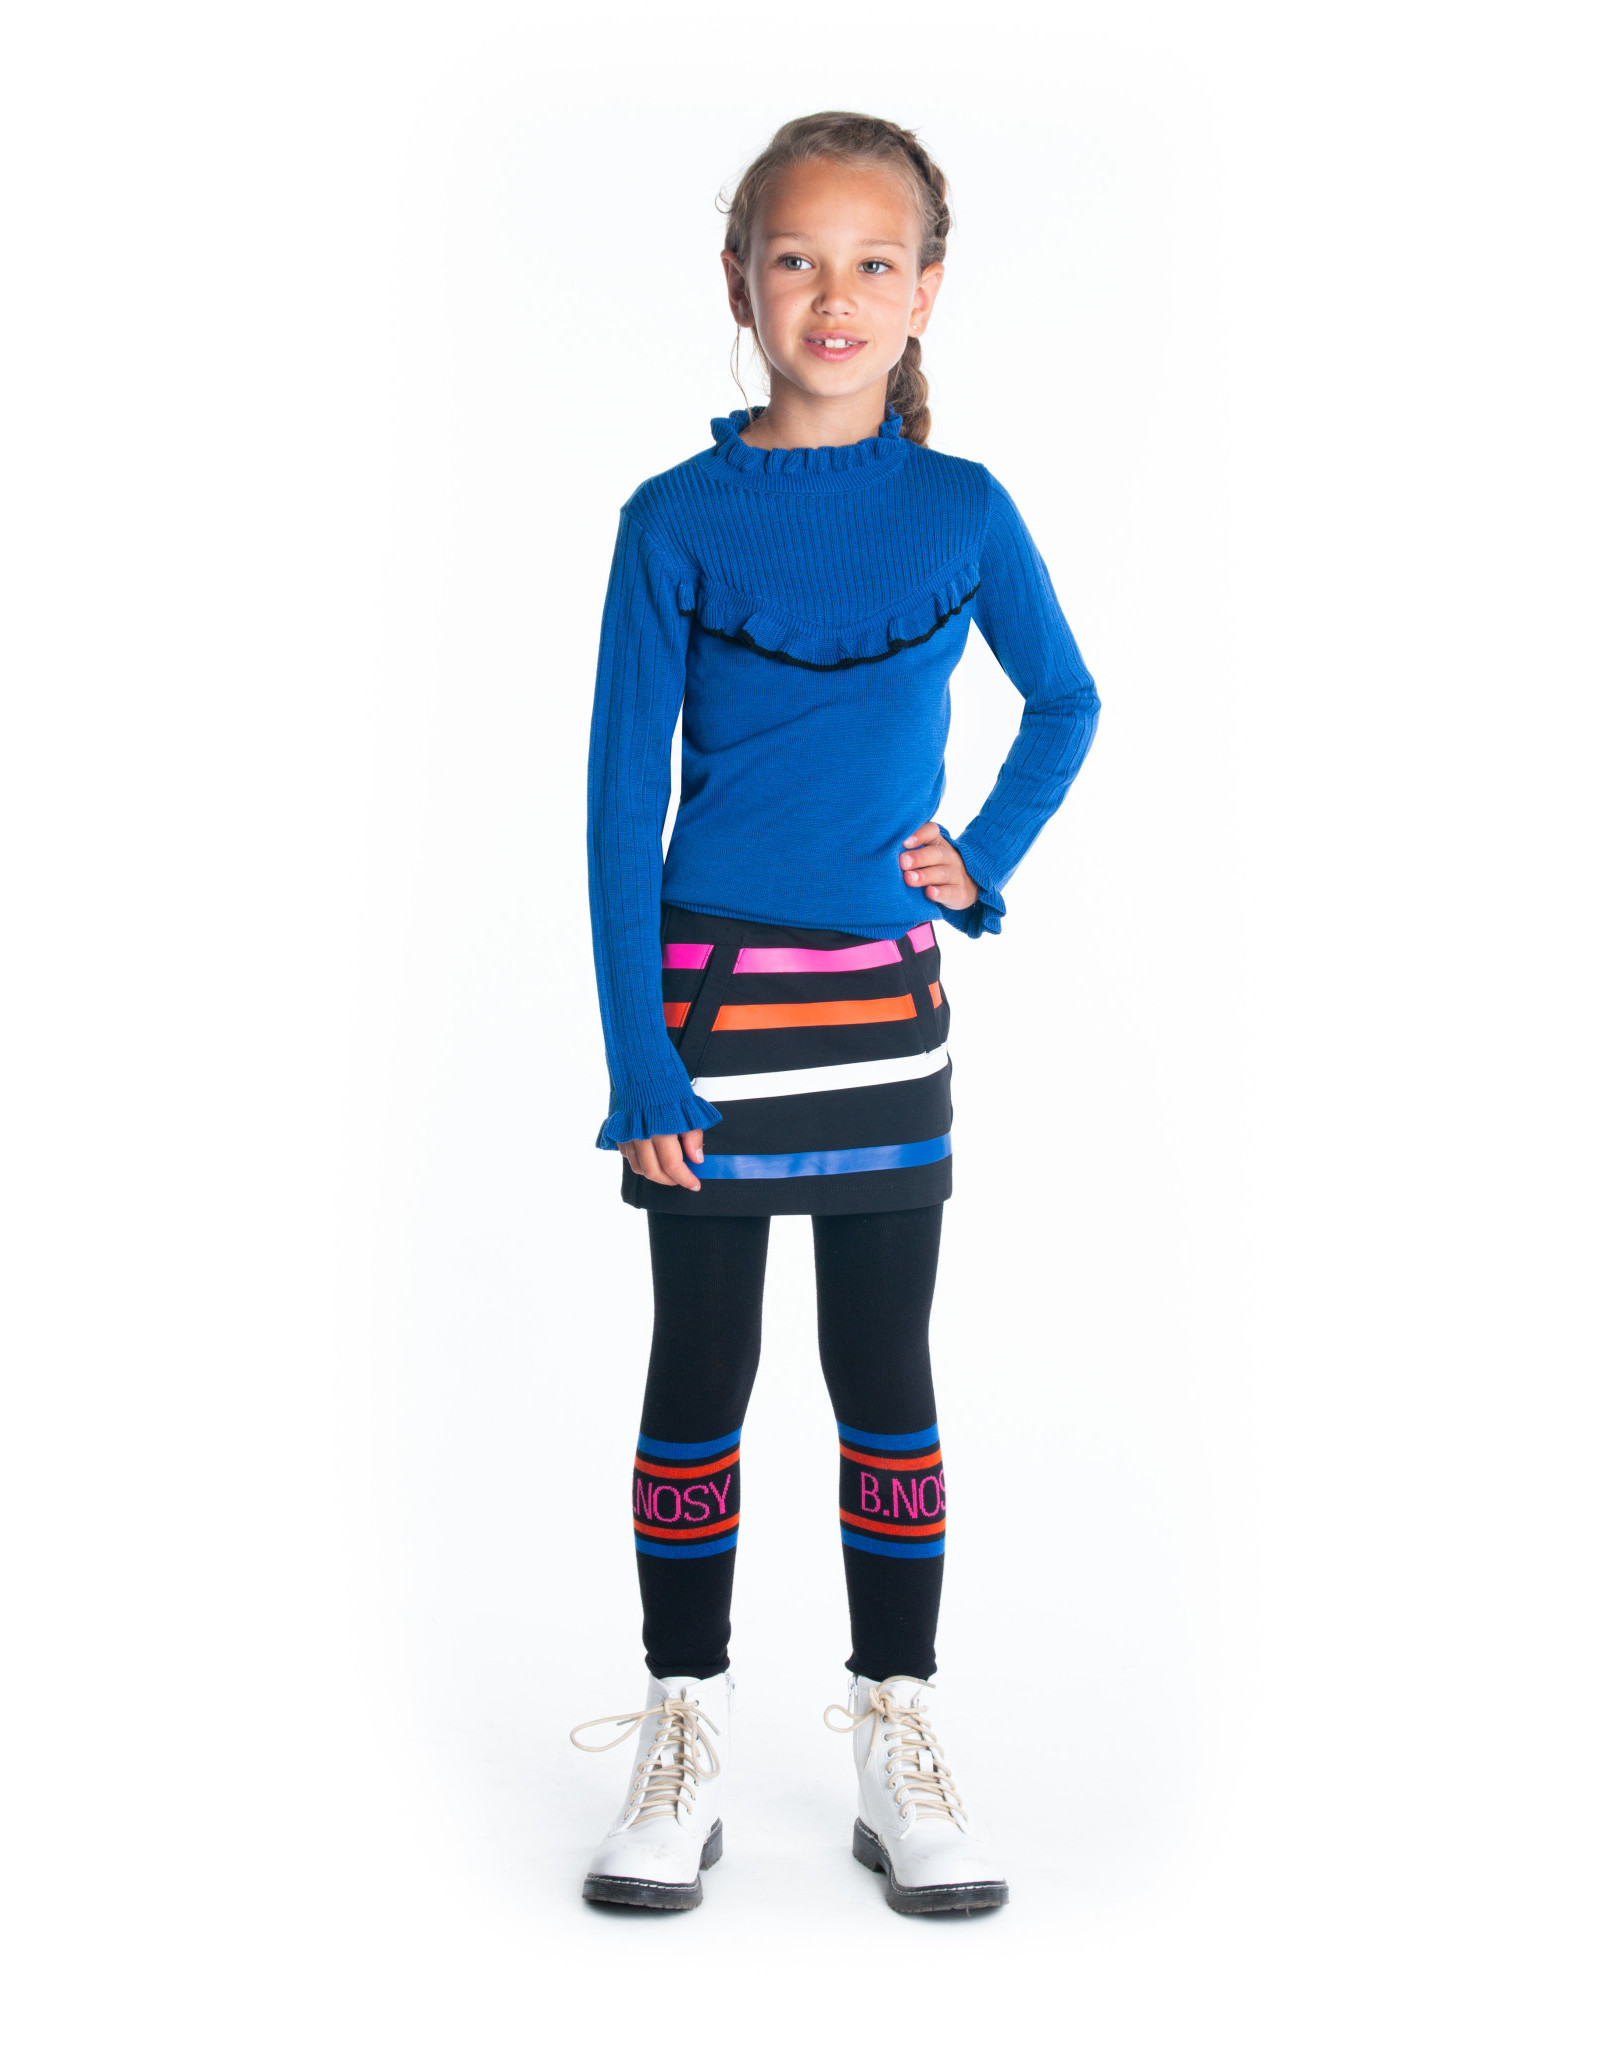 B-nosy Gils knitted pullover with v-shaped ruffle 183 Cobalt blue